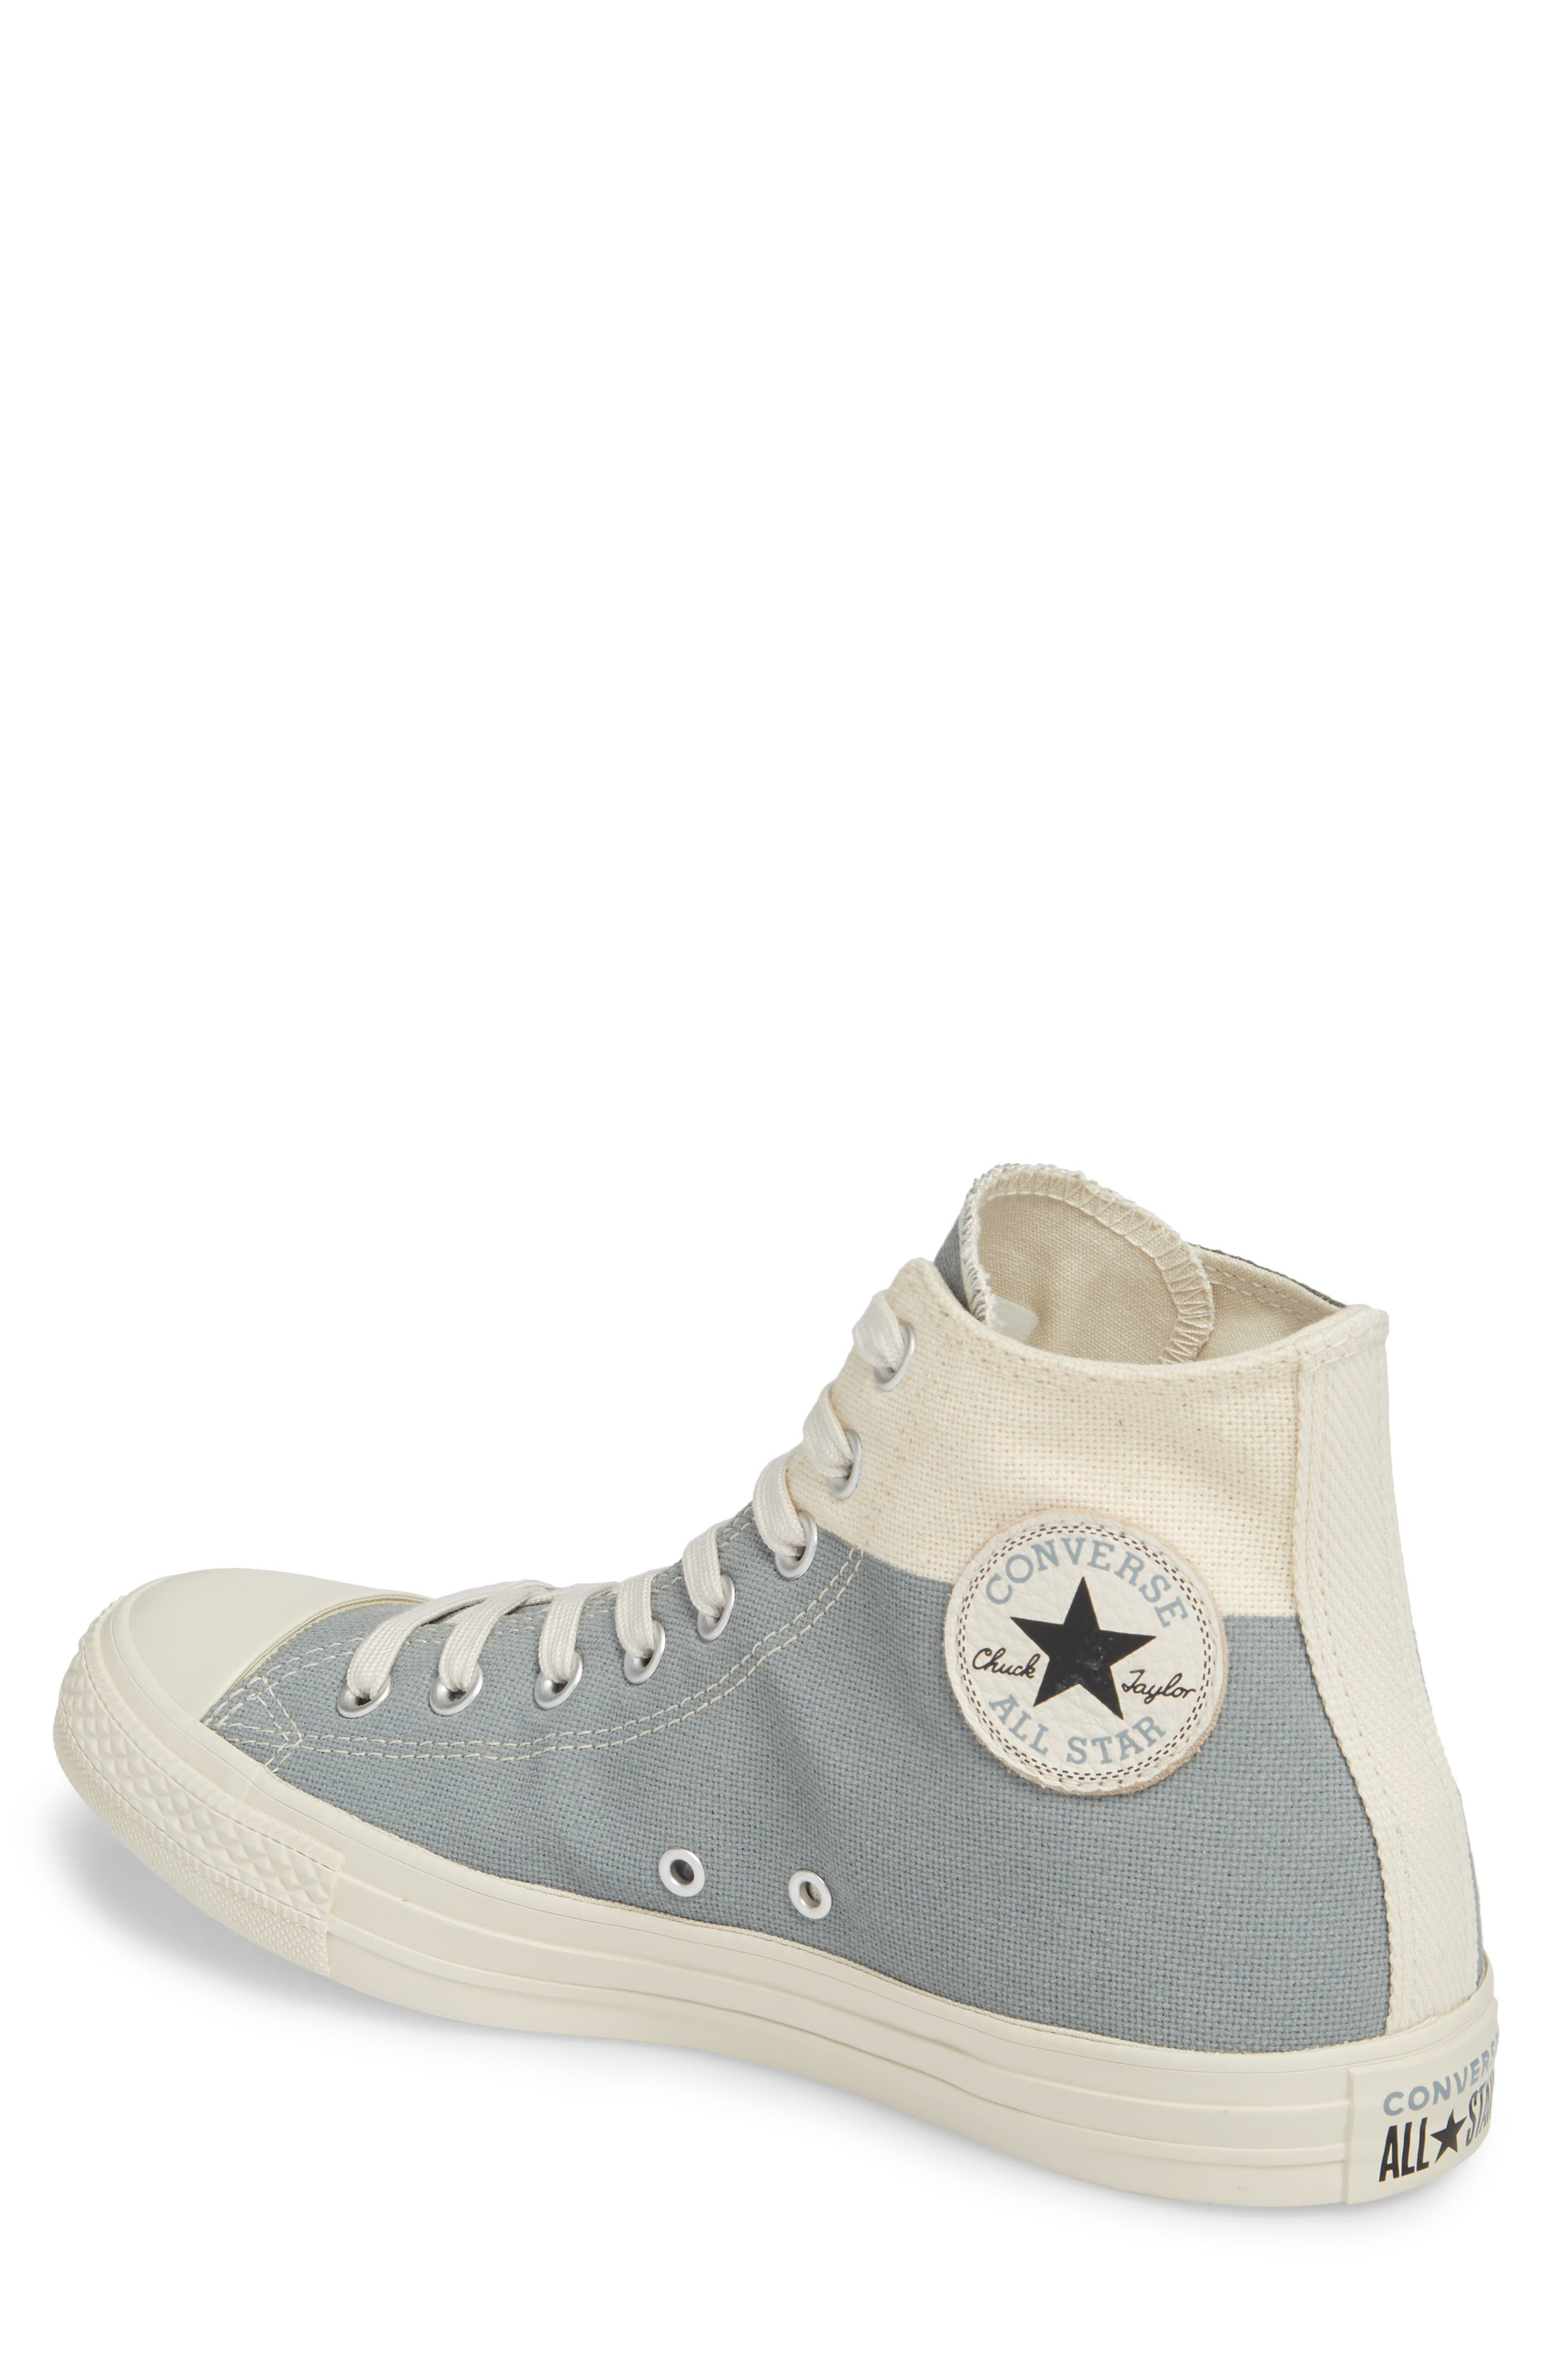 Chuck Taylor<sup>®</sup> All Star<sup>®</sup> Jute Americana High Top Sneaker,                             Alternate thumbnail 2, color,                             Cool Grey